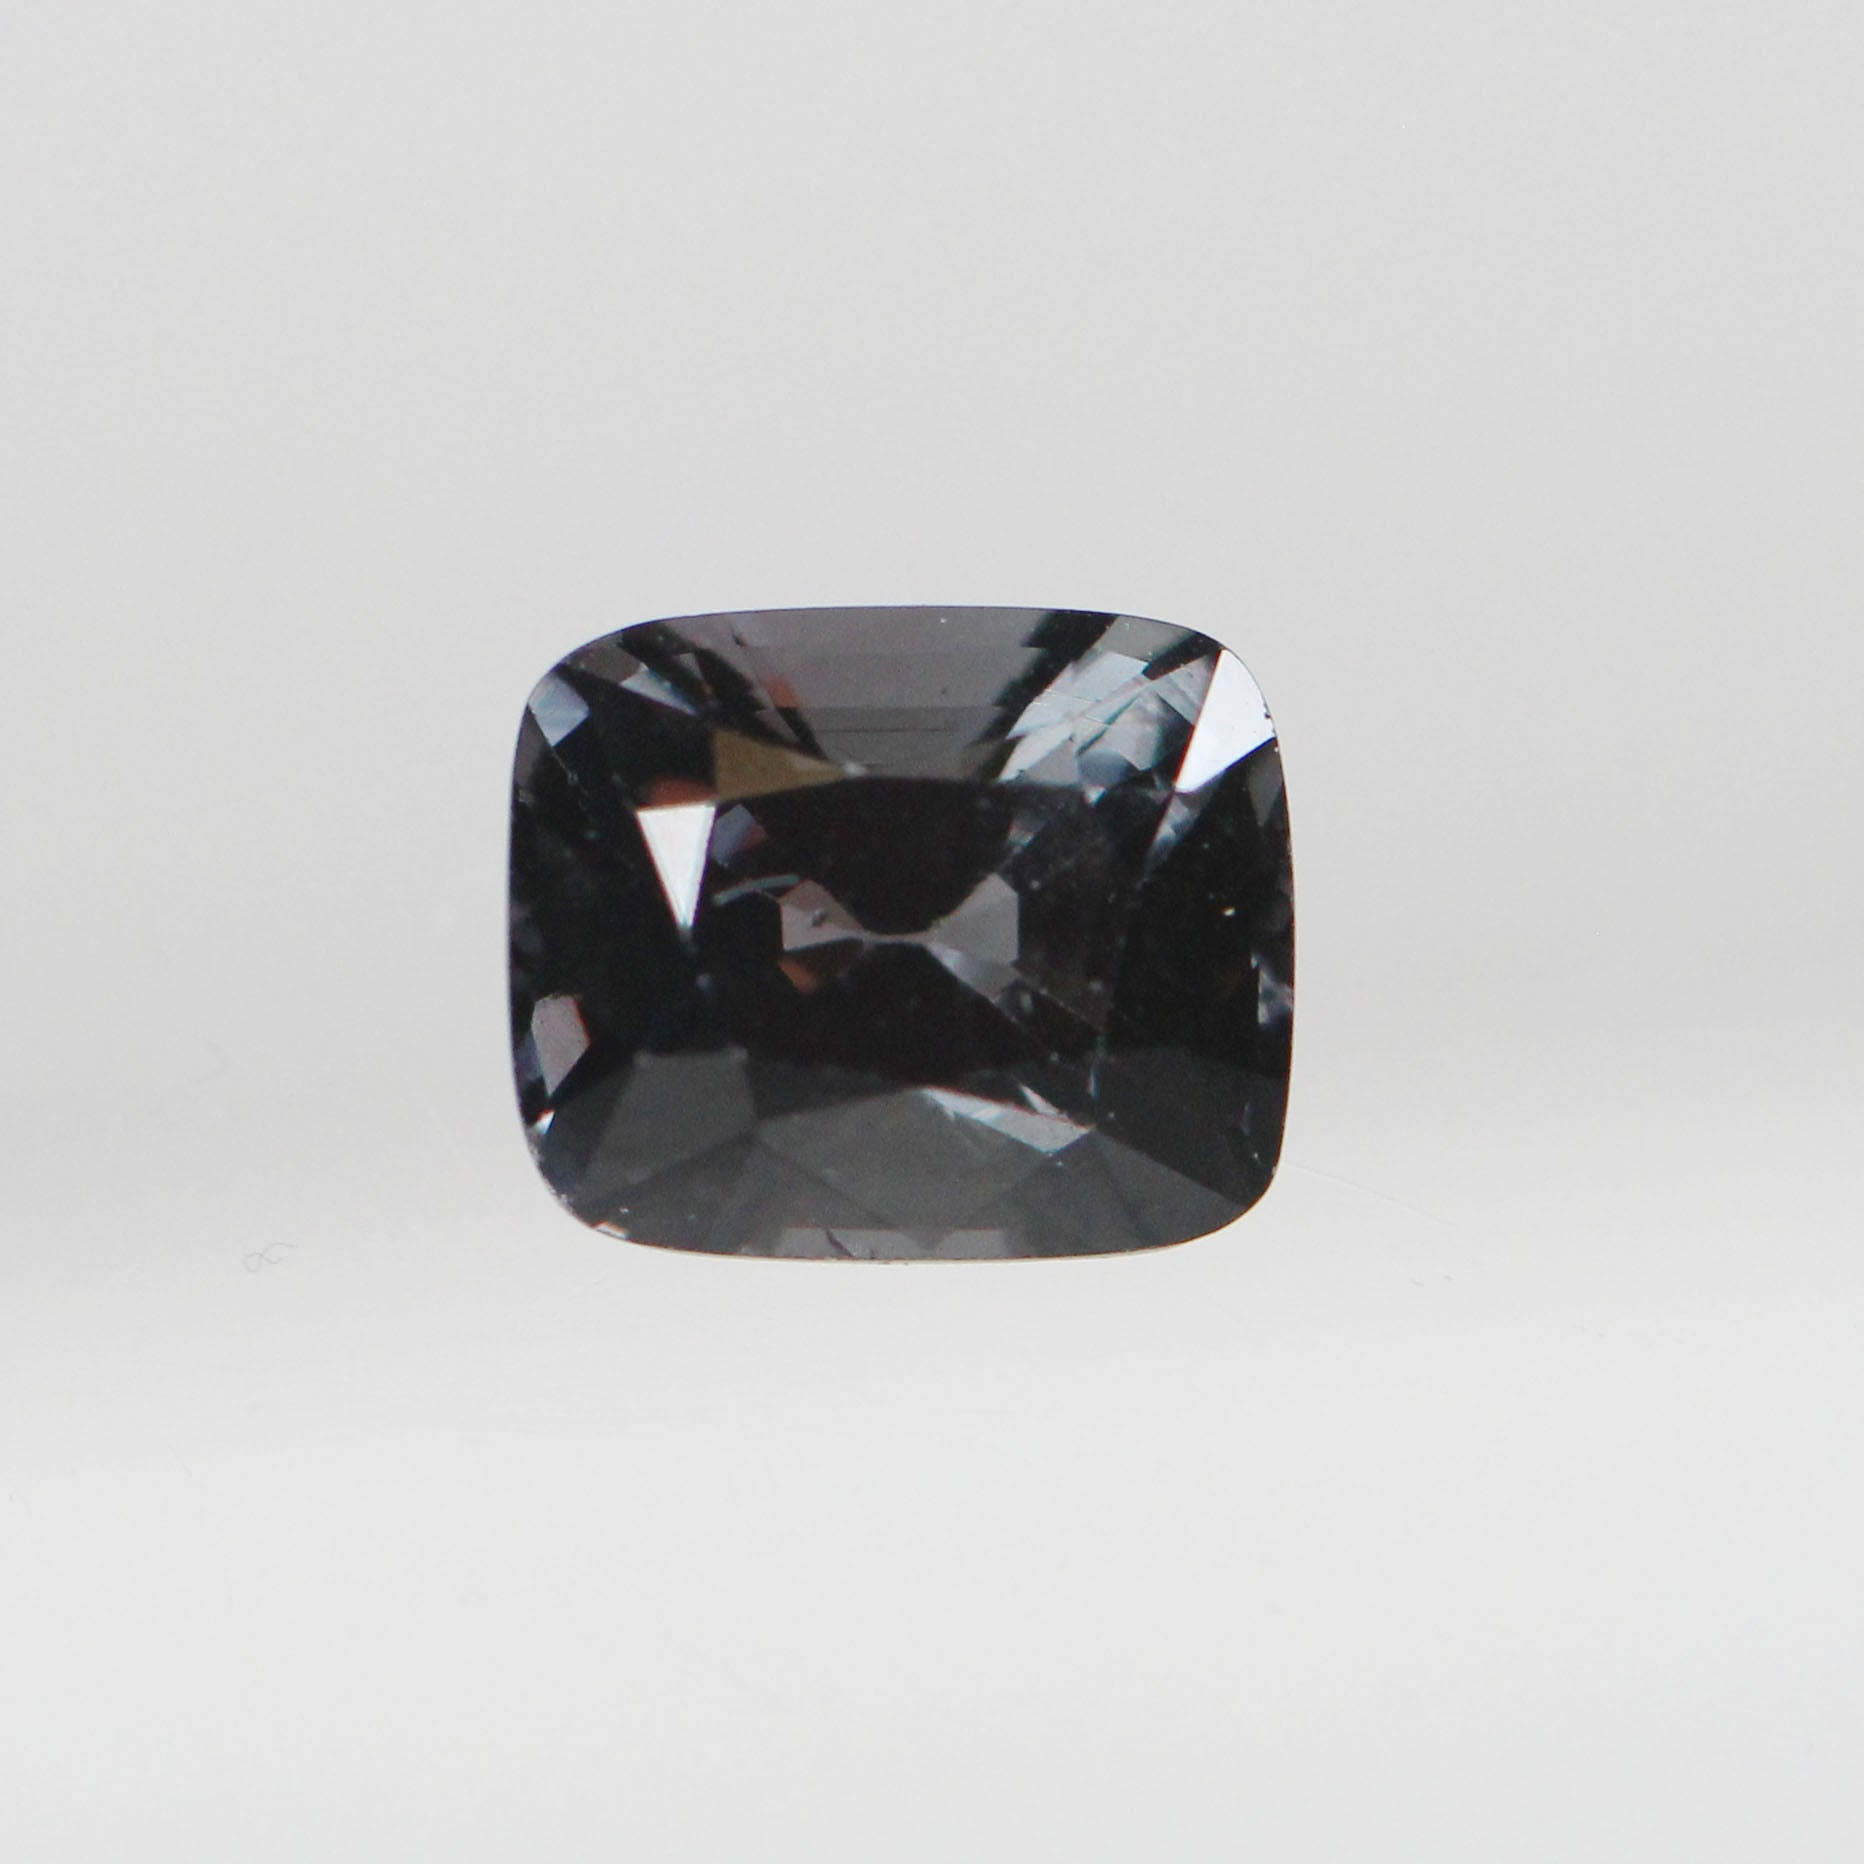 1.92 Carat Cushion Spinel for Custom Work - Inventory Code CBSP192 - Salt & Pepper Celestial Diamond Engagement Rings and Wedding Bands  by Midwinter Co.